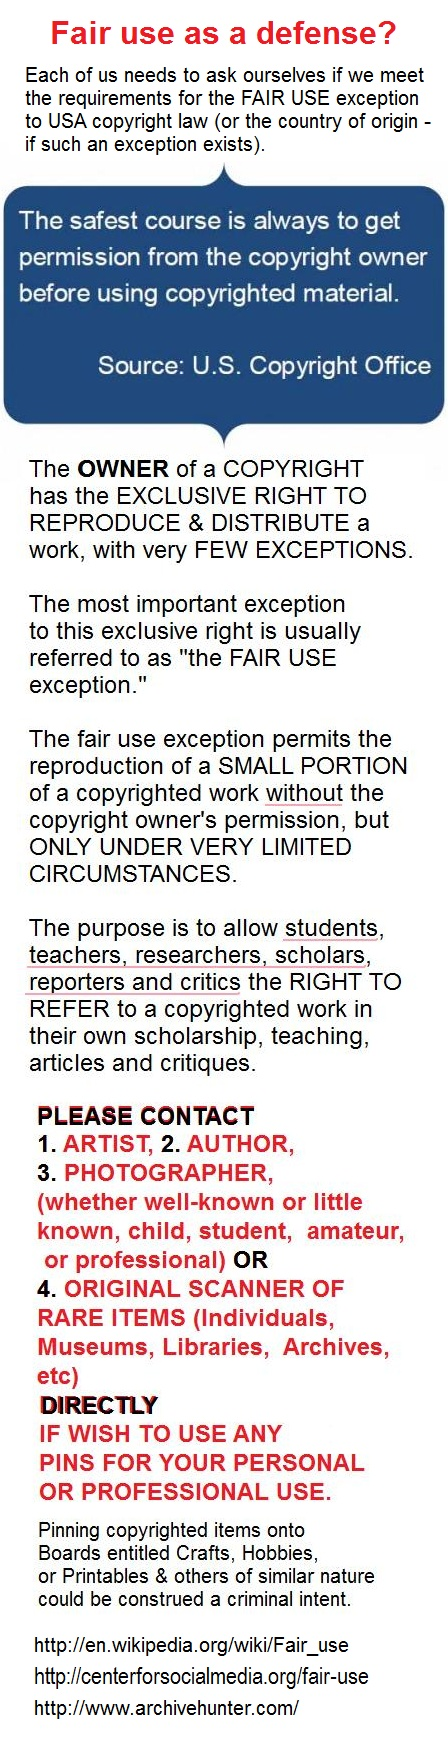 Is the  FAIR USE exception to copyright law a defense for pinners? A question we all need to examine and ask ourselves... For insight into the  misconceptions & facts of copyright law and fair use:   http://en.wikipedia.org/wiki/Fair_use   http://www.archivehunter.com/2010/04/copyright-and-fair-use-3/  http://centerforsocialmedia.org/fair-use